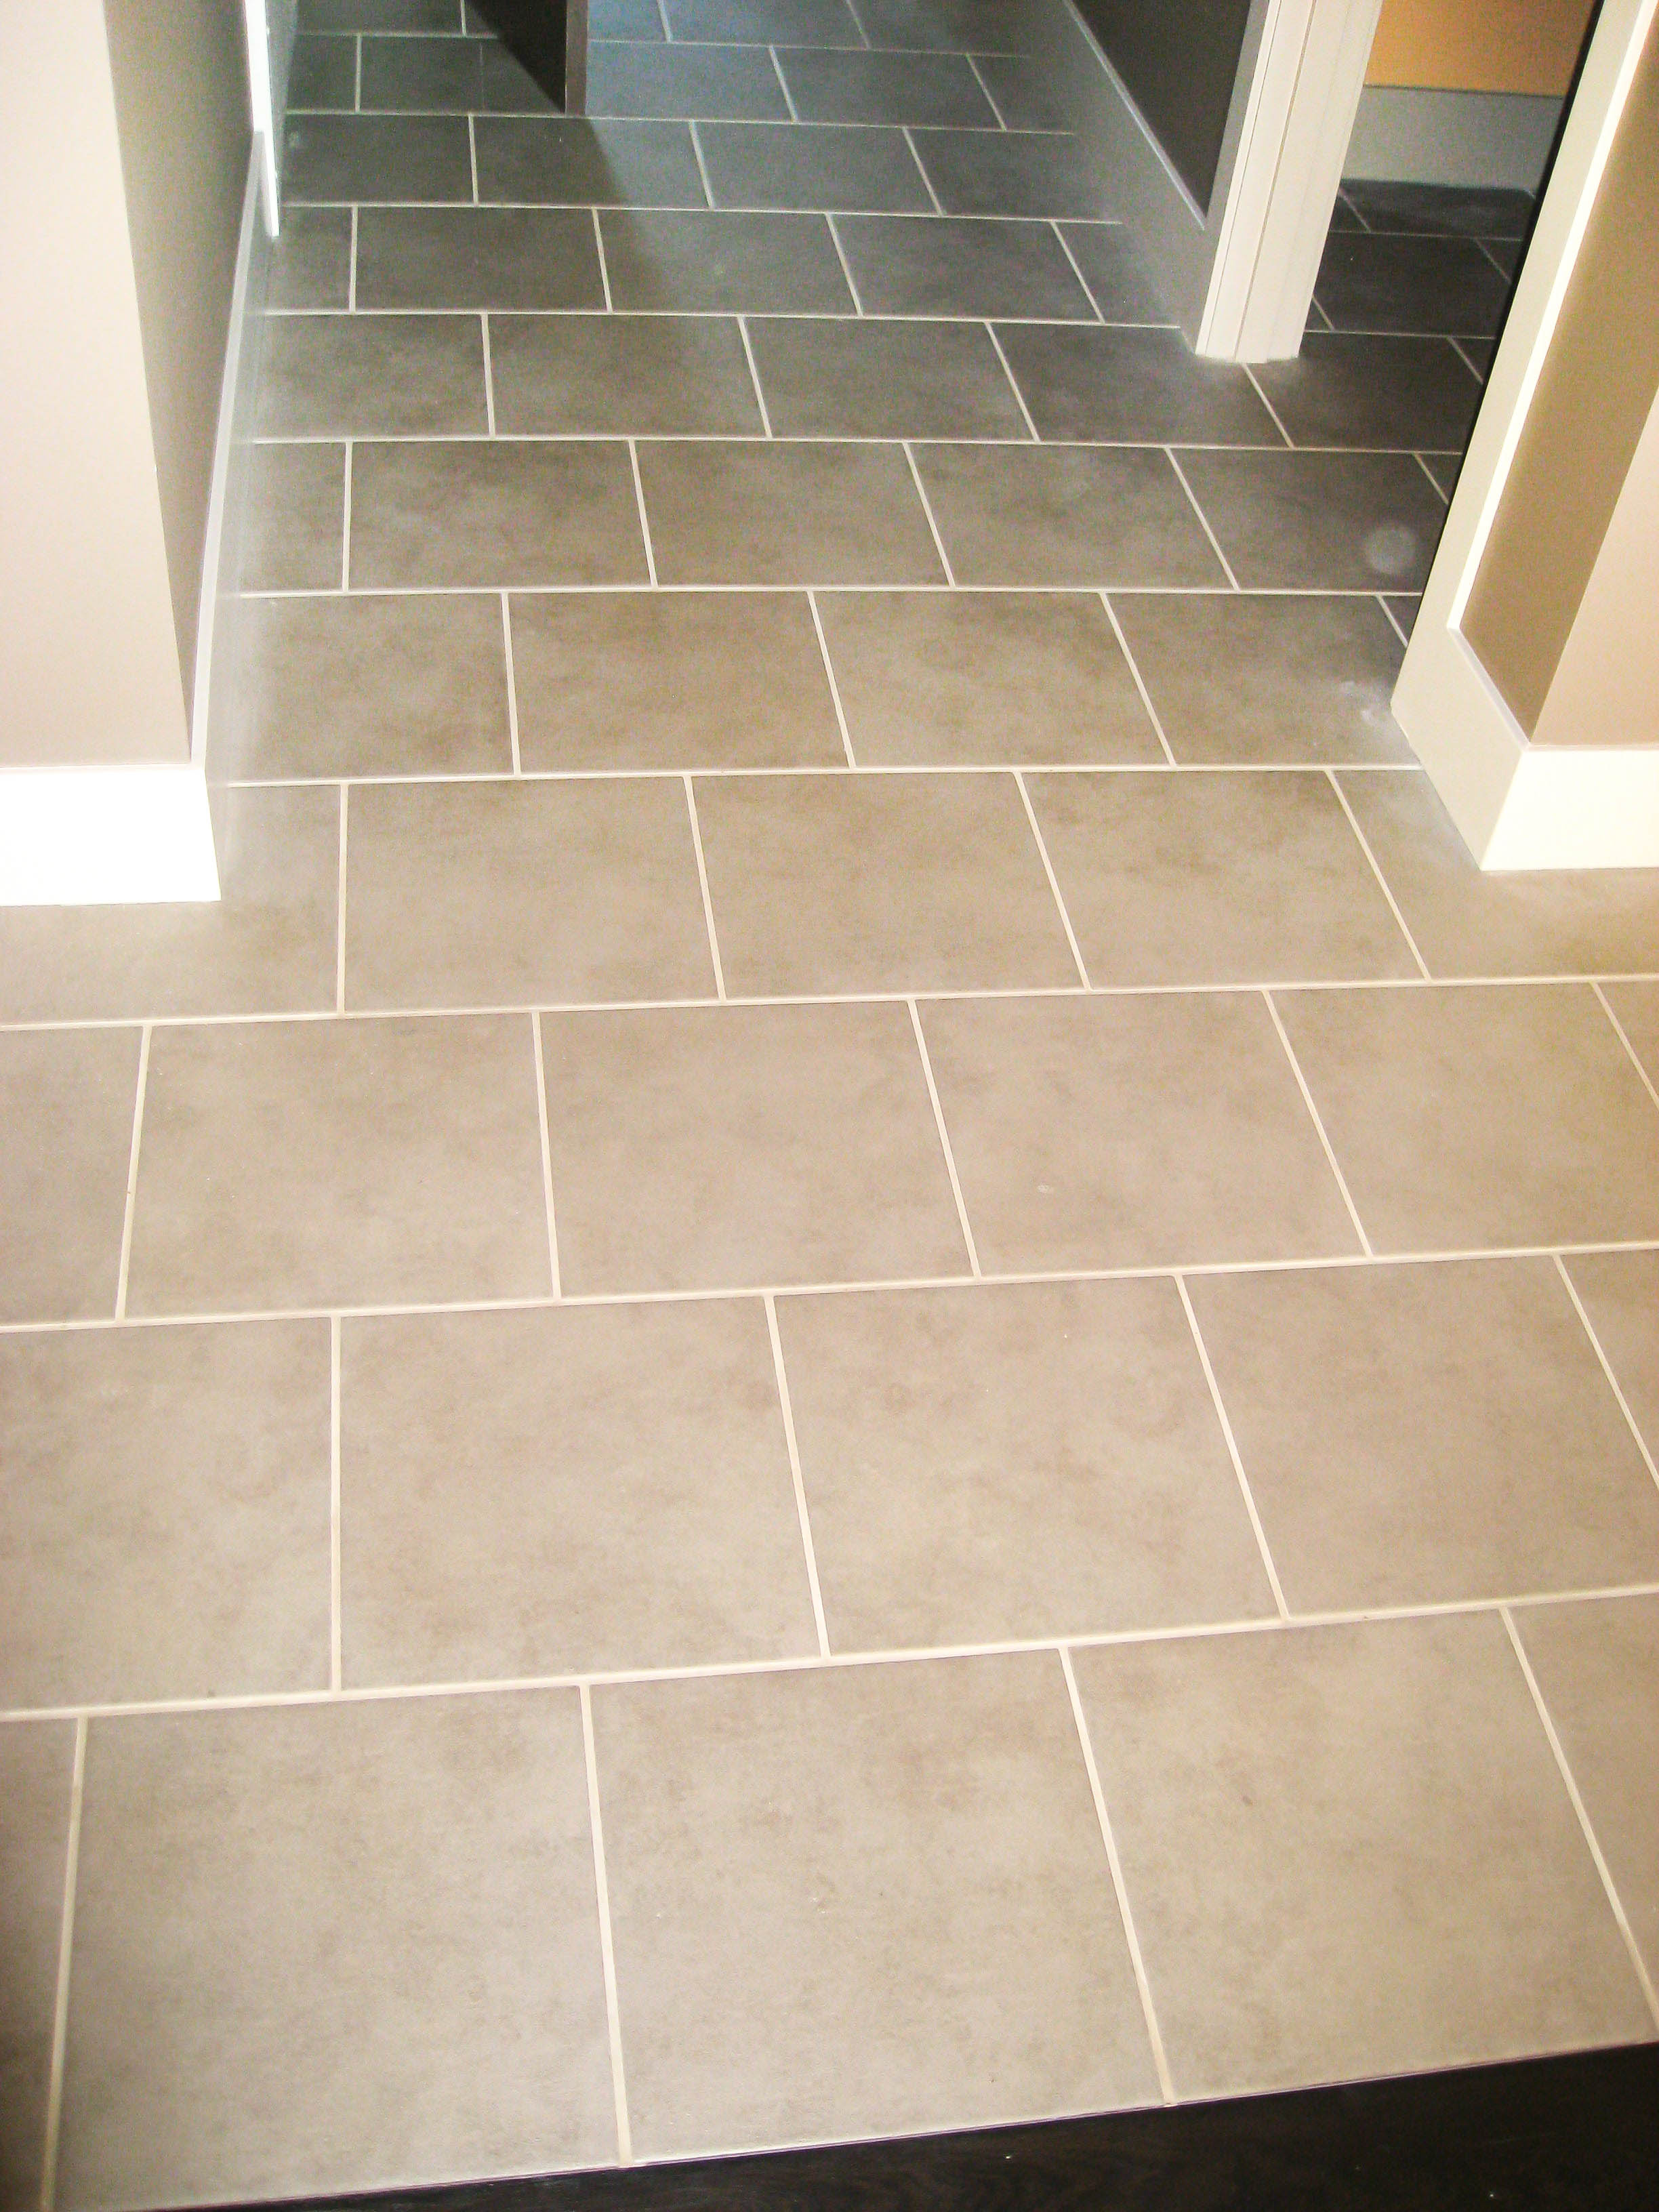 Tile floor photos gallery seattle tile contractor irc for Floor tiles images